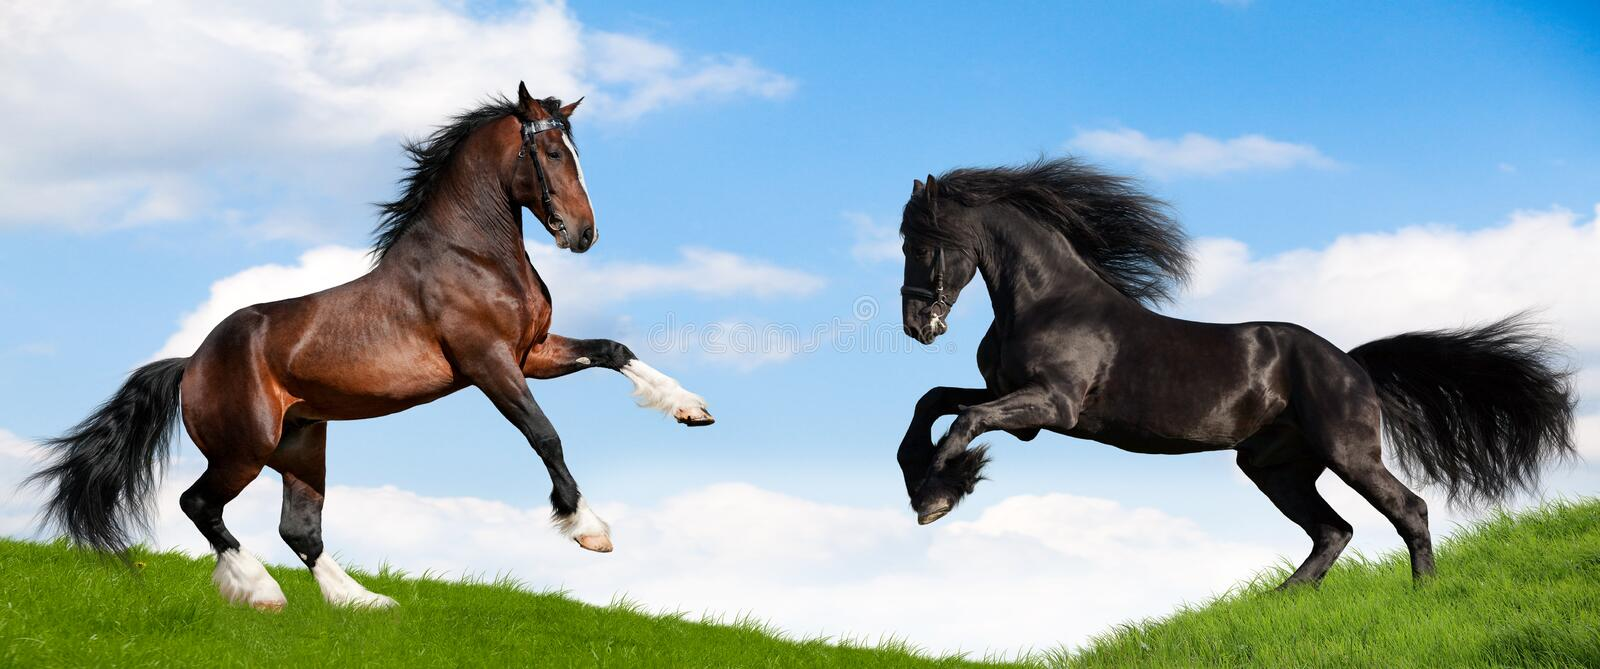 Two powerful horse runs gallop in field. royalty free stock image